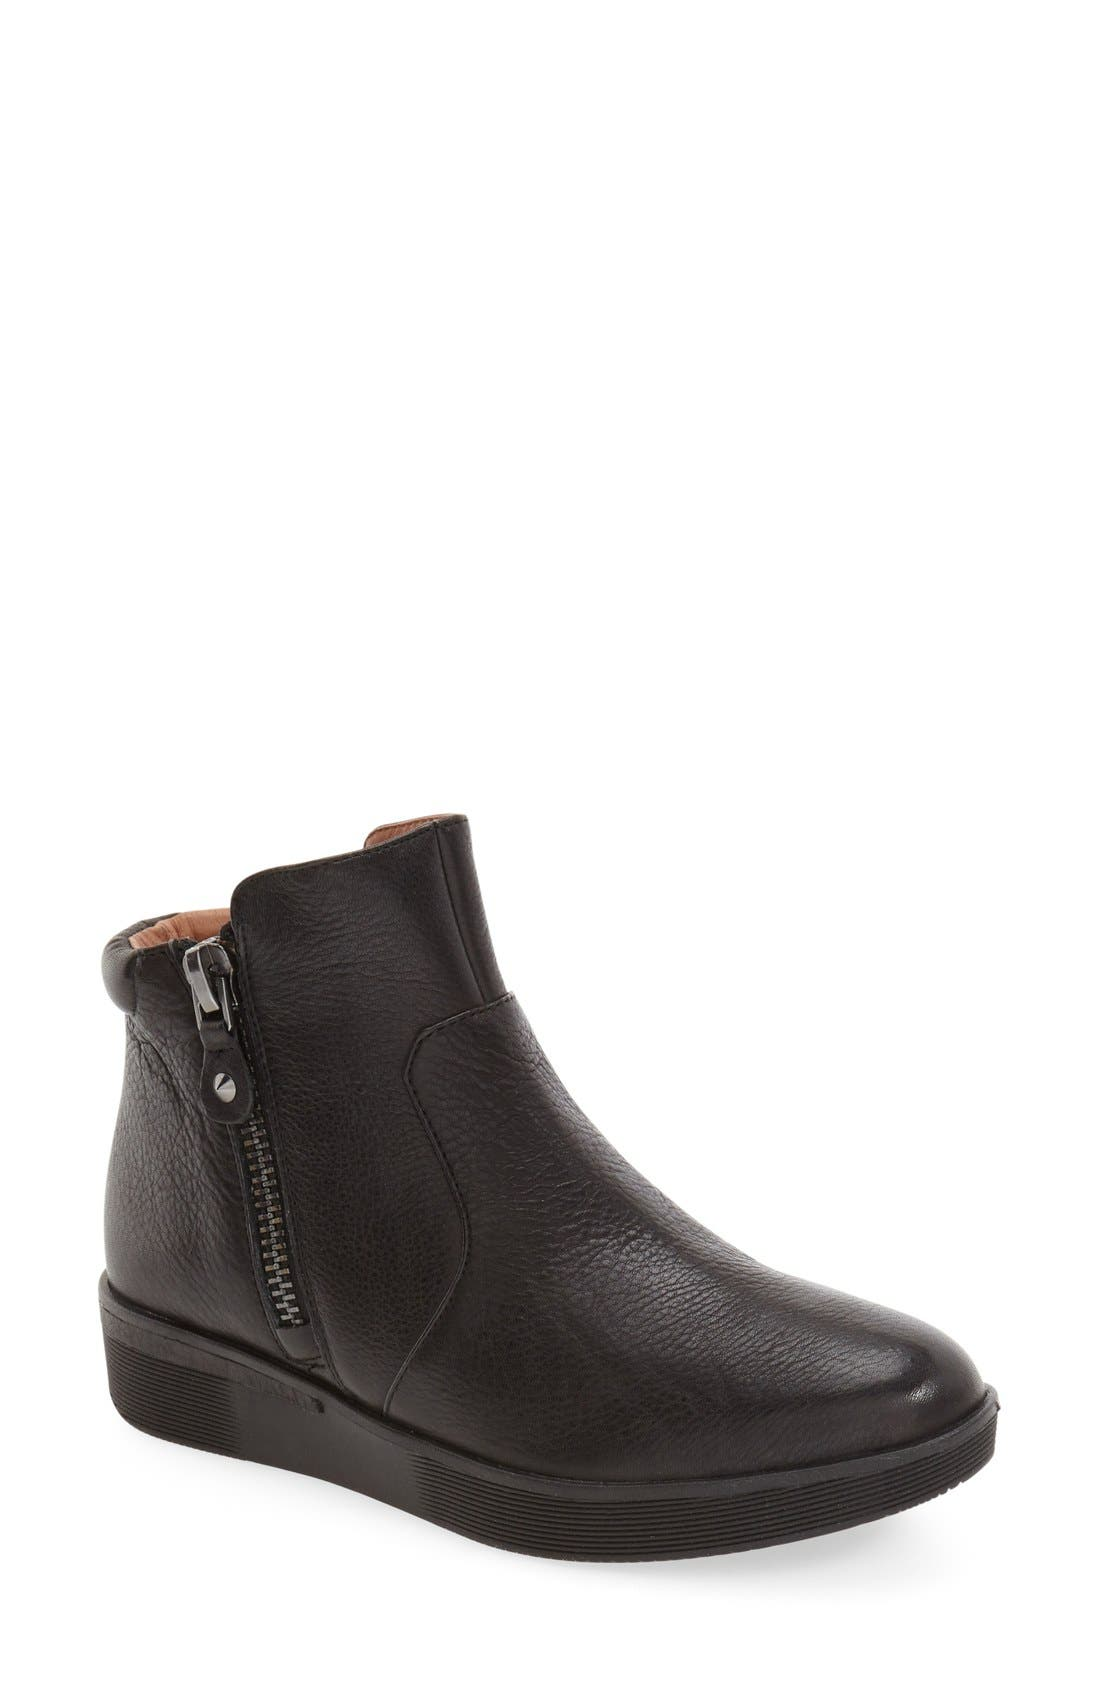 by Kenneth Cole 'Harper' Sneaker Bootie,                         Main,                         color, Black Leather